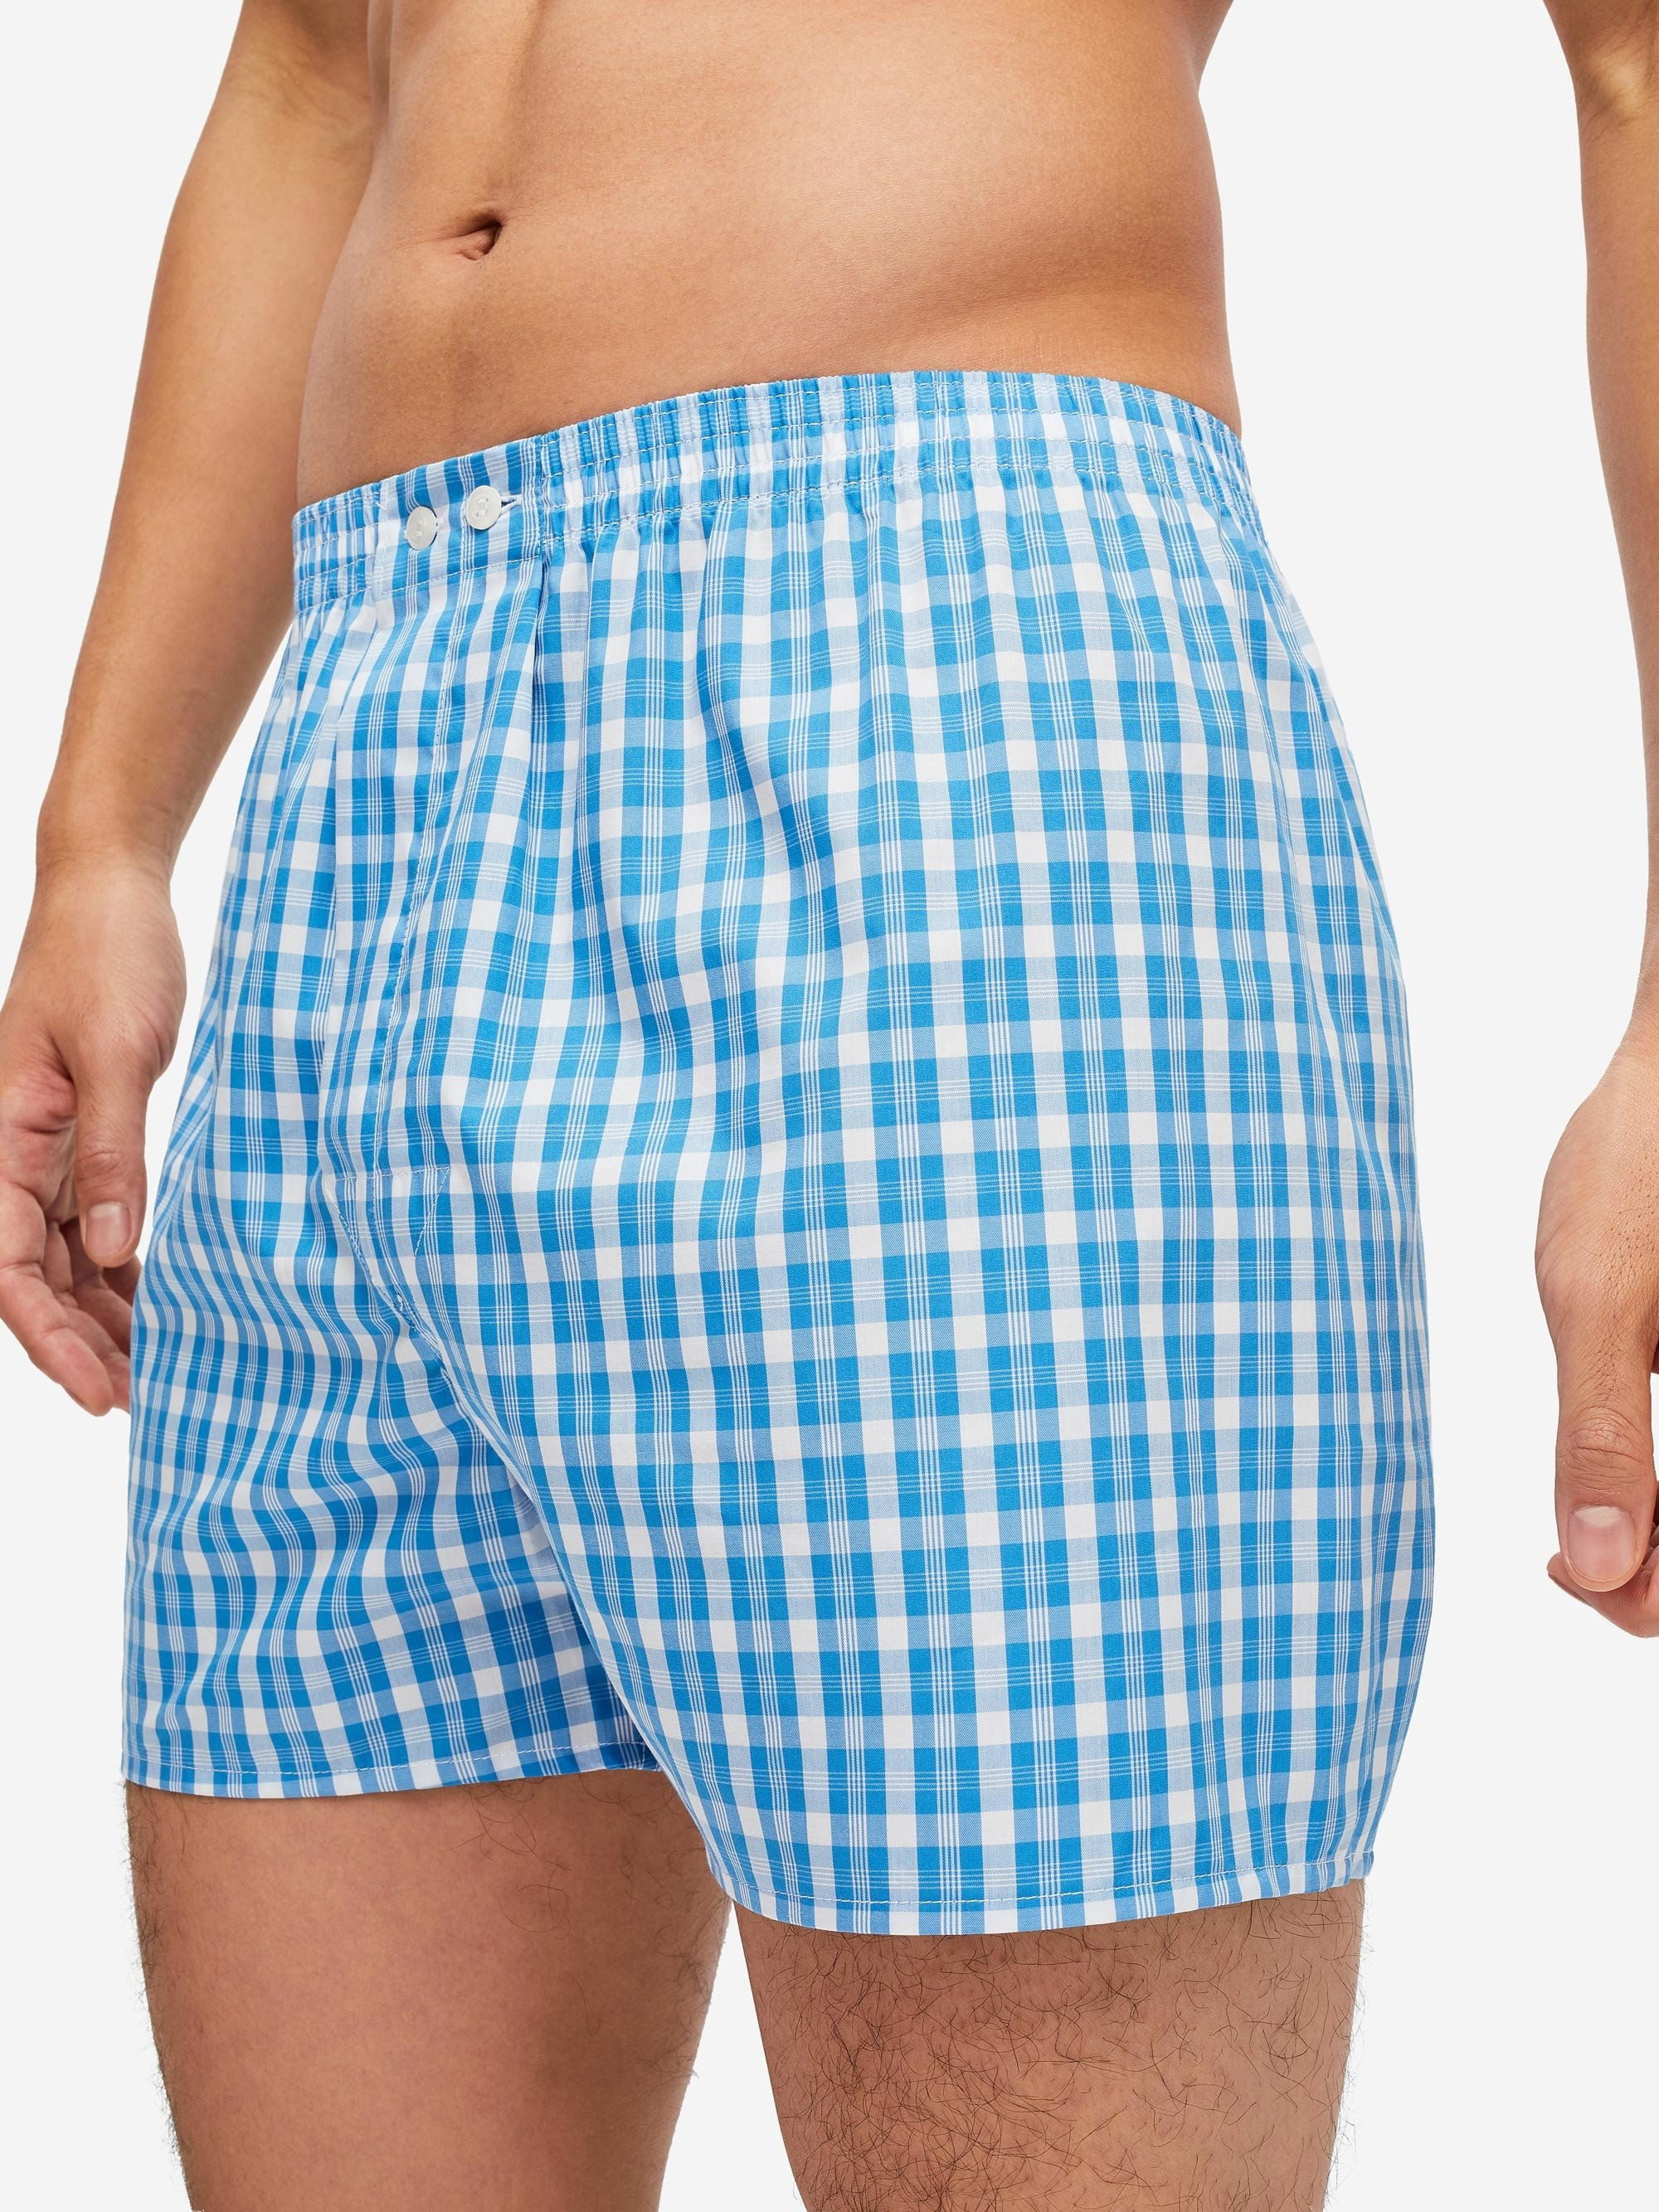 Men's Classic Fit Boxer Shorts Barker 29 Cotton Check Blue